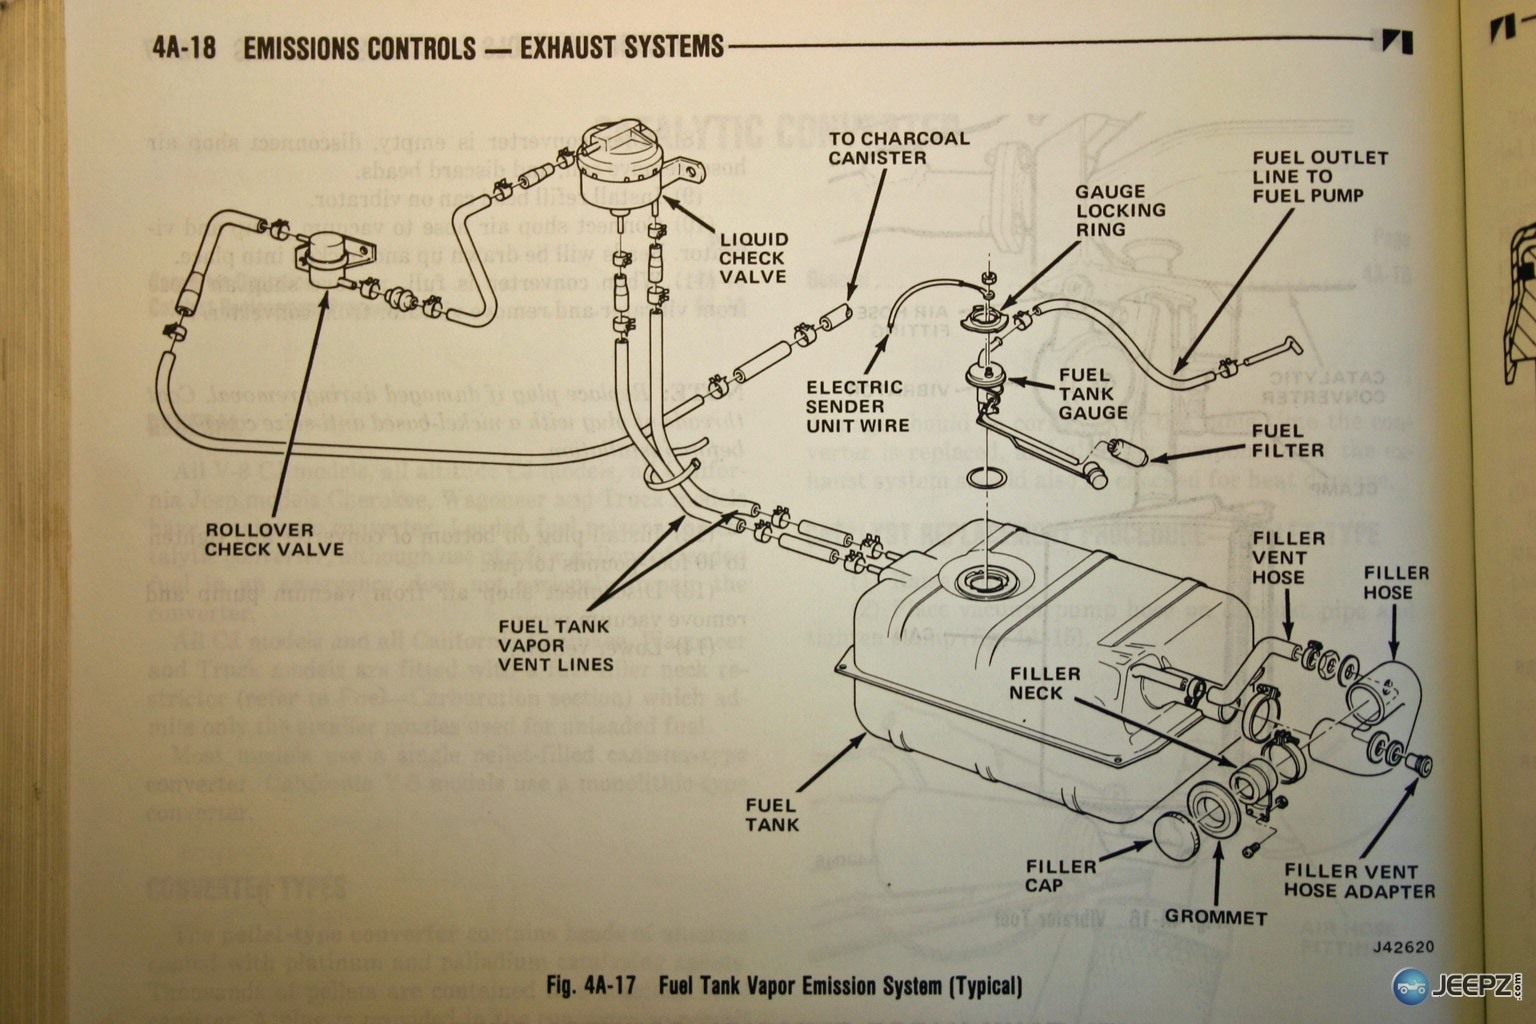 D Fuel Check Valve Jeep Fuel Tank Emission System on Chevy Truck Dual Tank Fuel Line Routing Diagram